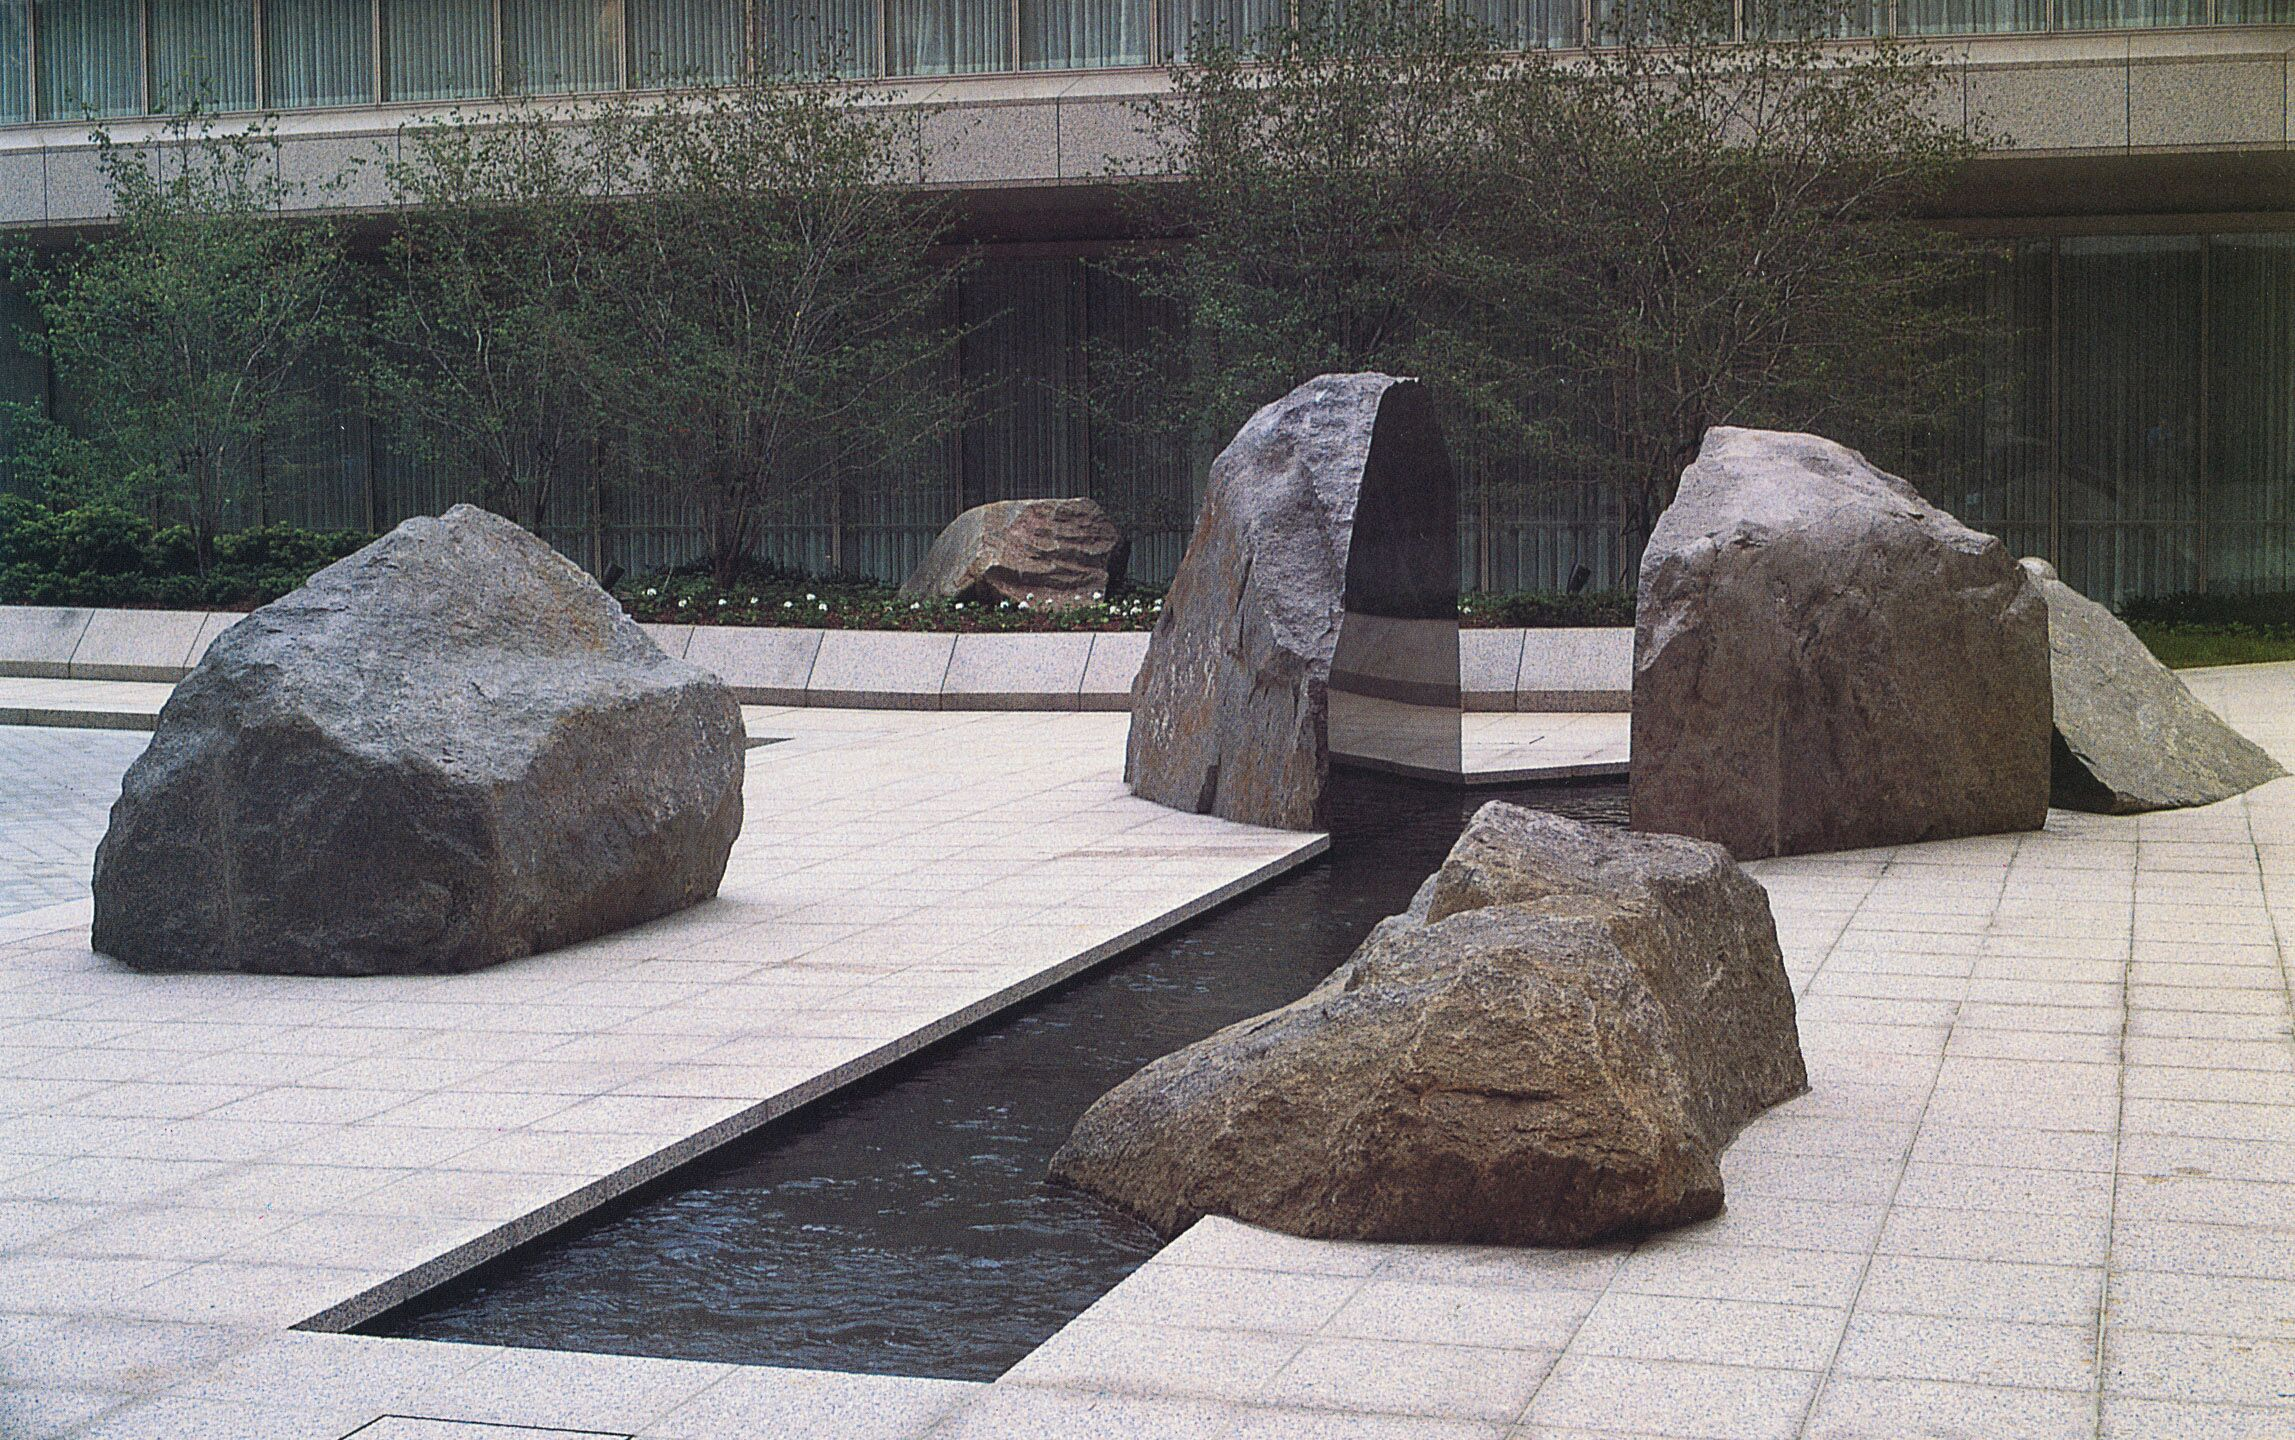 Exterior photo of the Marabar sculpture, split granite rocks, in a modernist courtyard